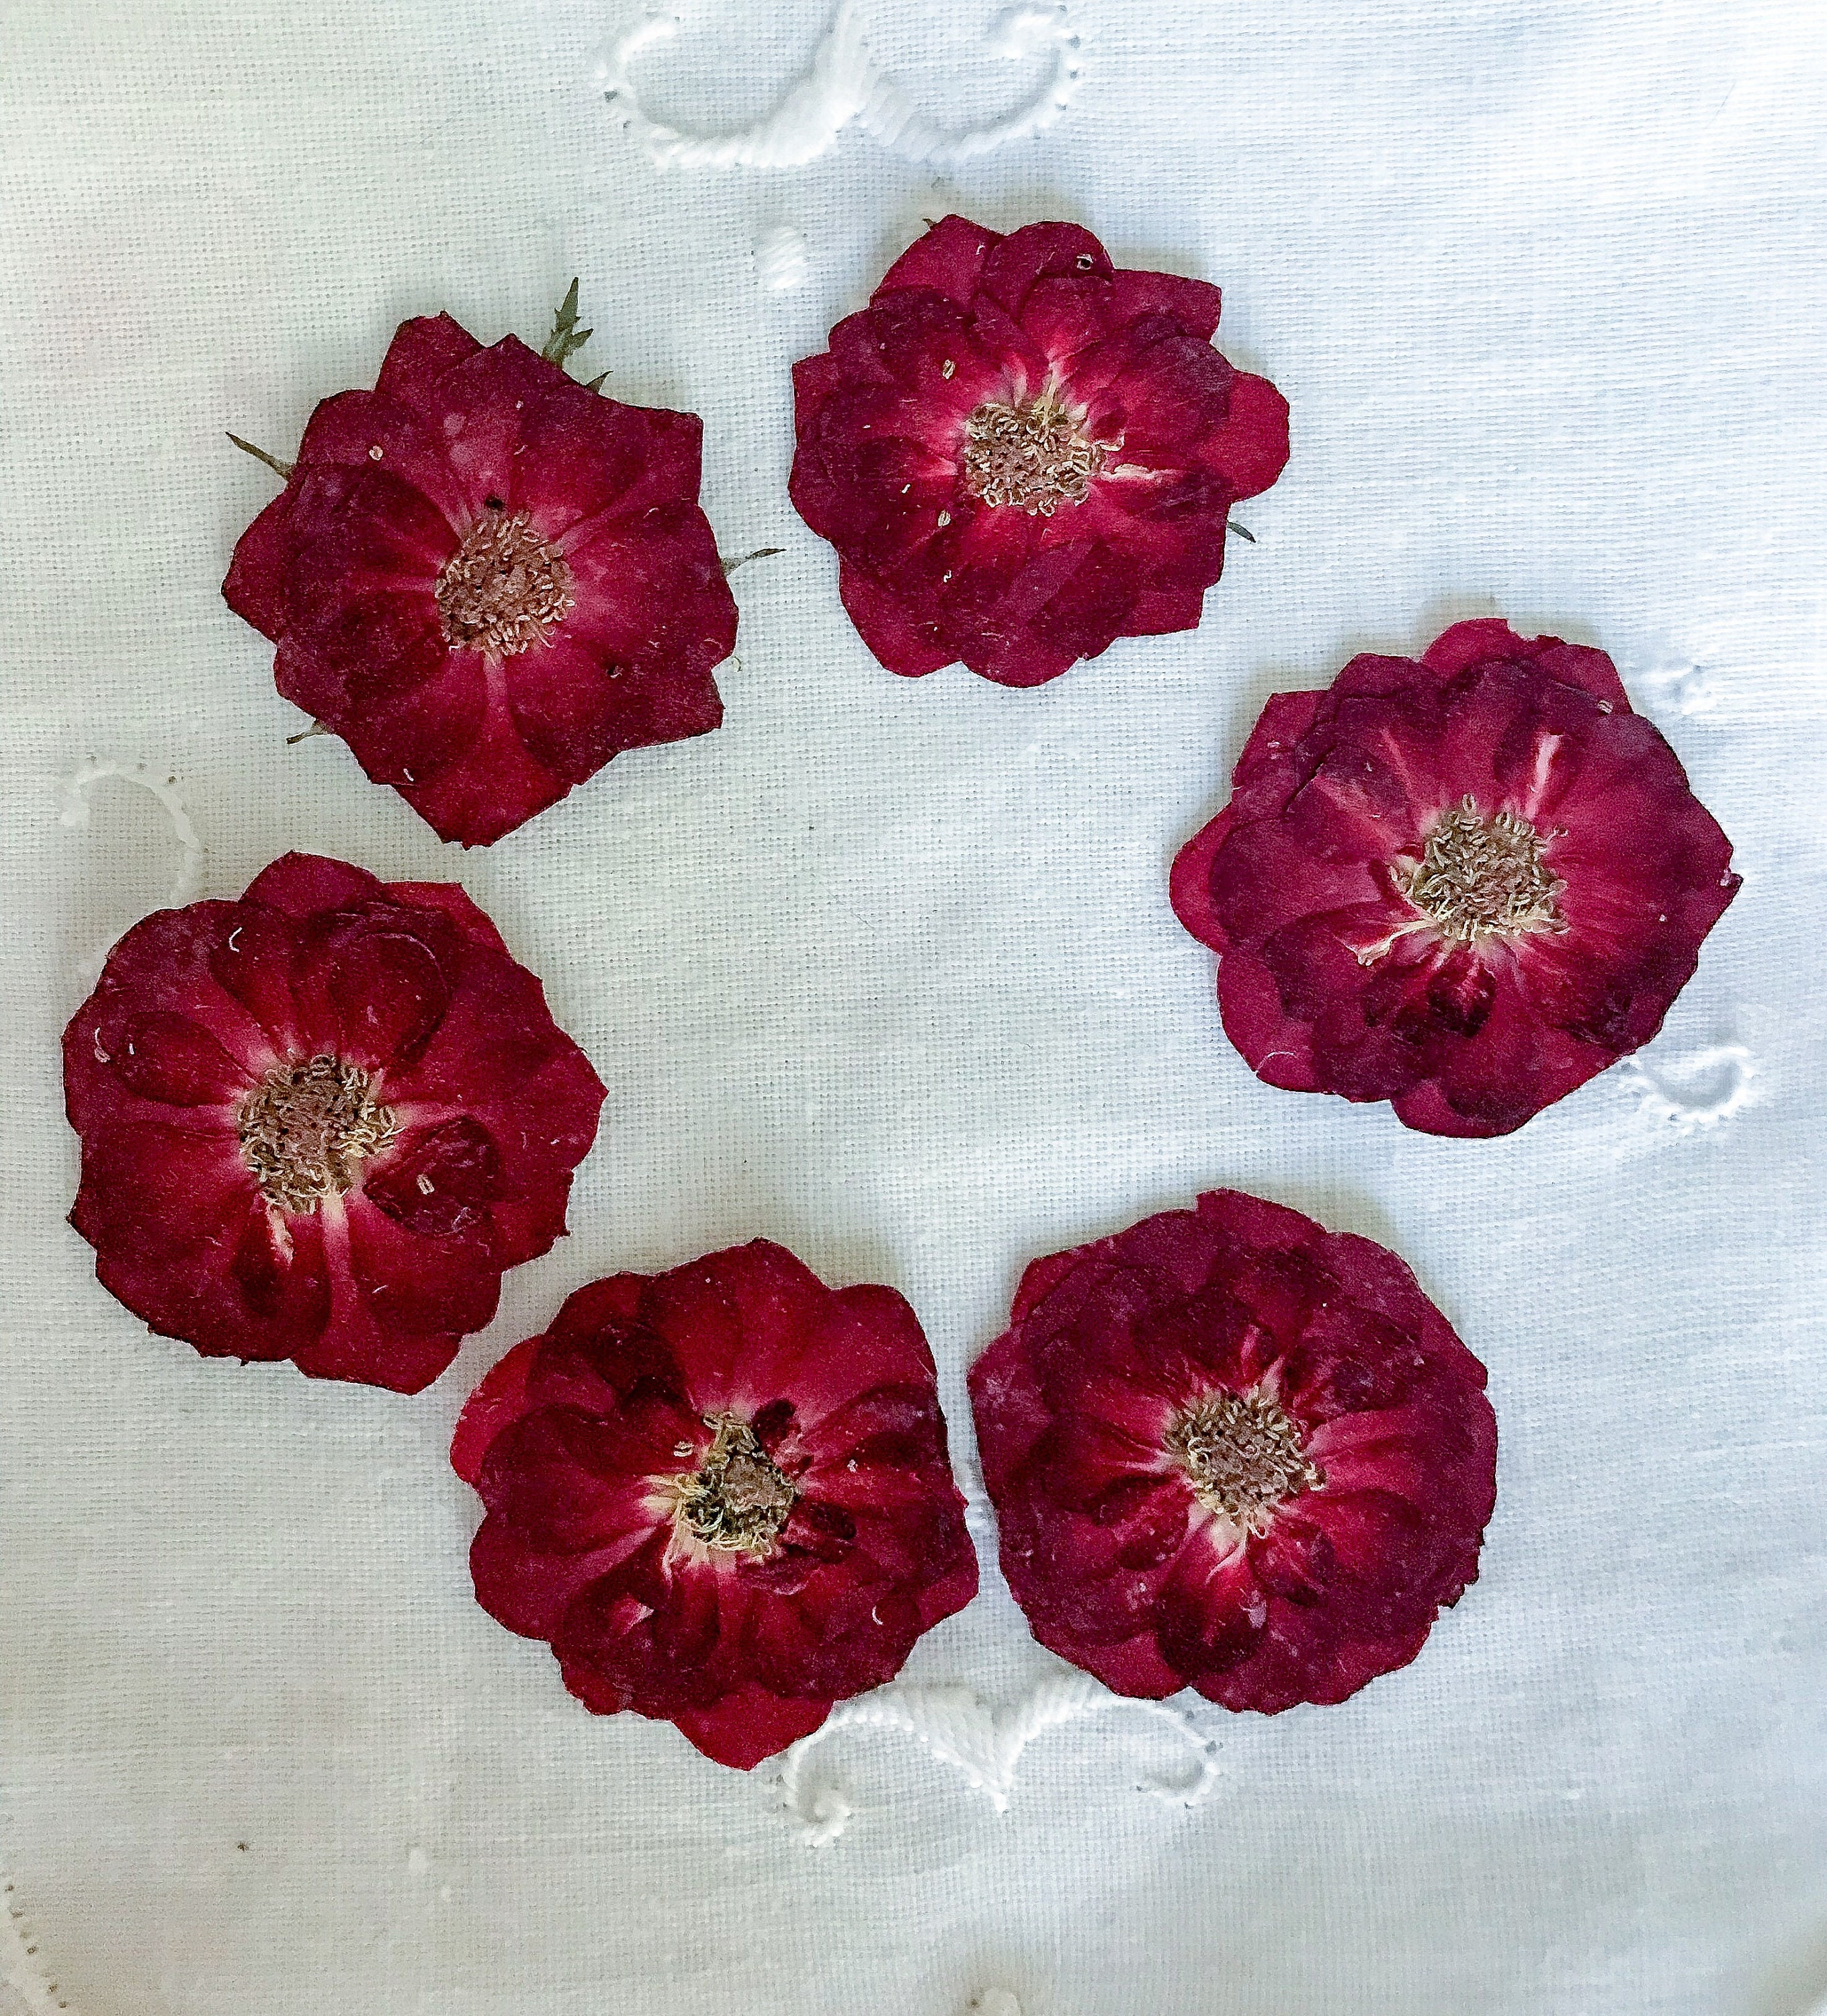 Pressed Roses Dried Roses Pressed Small Roses Real Red Roses